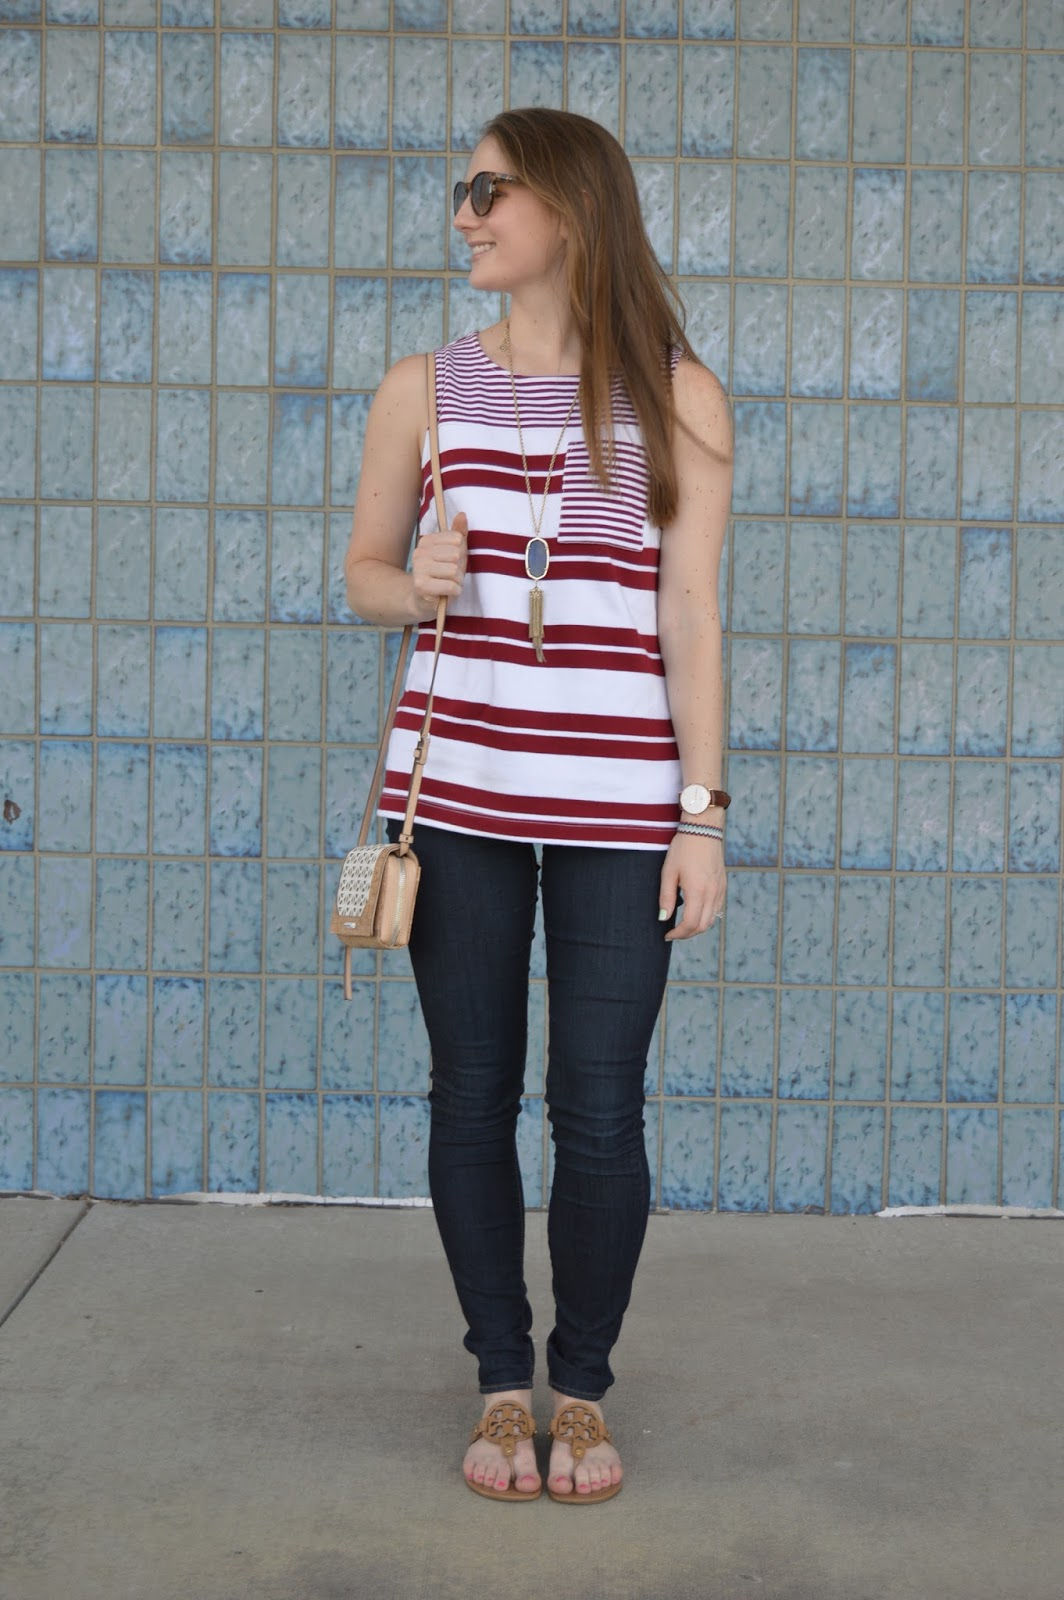 cute outfits to wear this summer | a memory of us | kansas city fashion blog | what to wear this summer | fourth of july outfit ideas | fourth of july outfit inspo | what to wear for the fourth of july | red and white striped tank top | red white and blue outfit ideas |